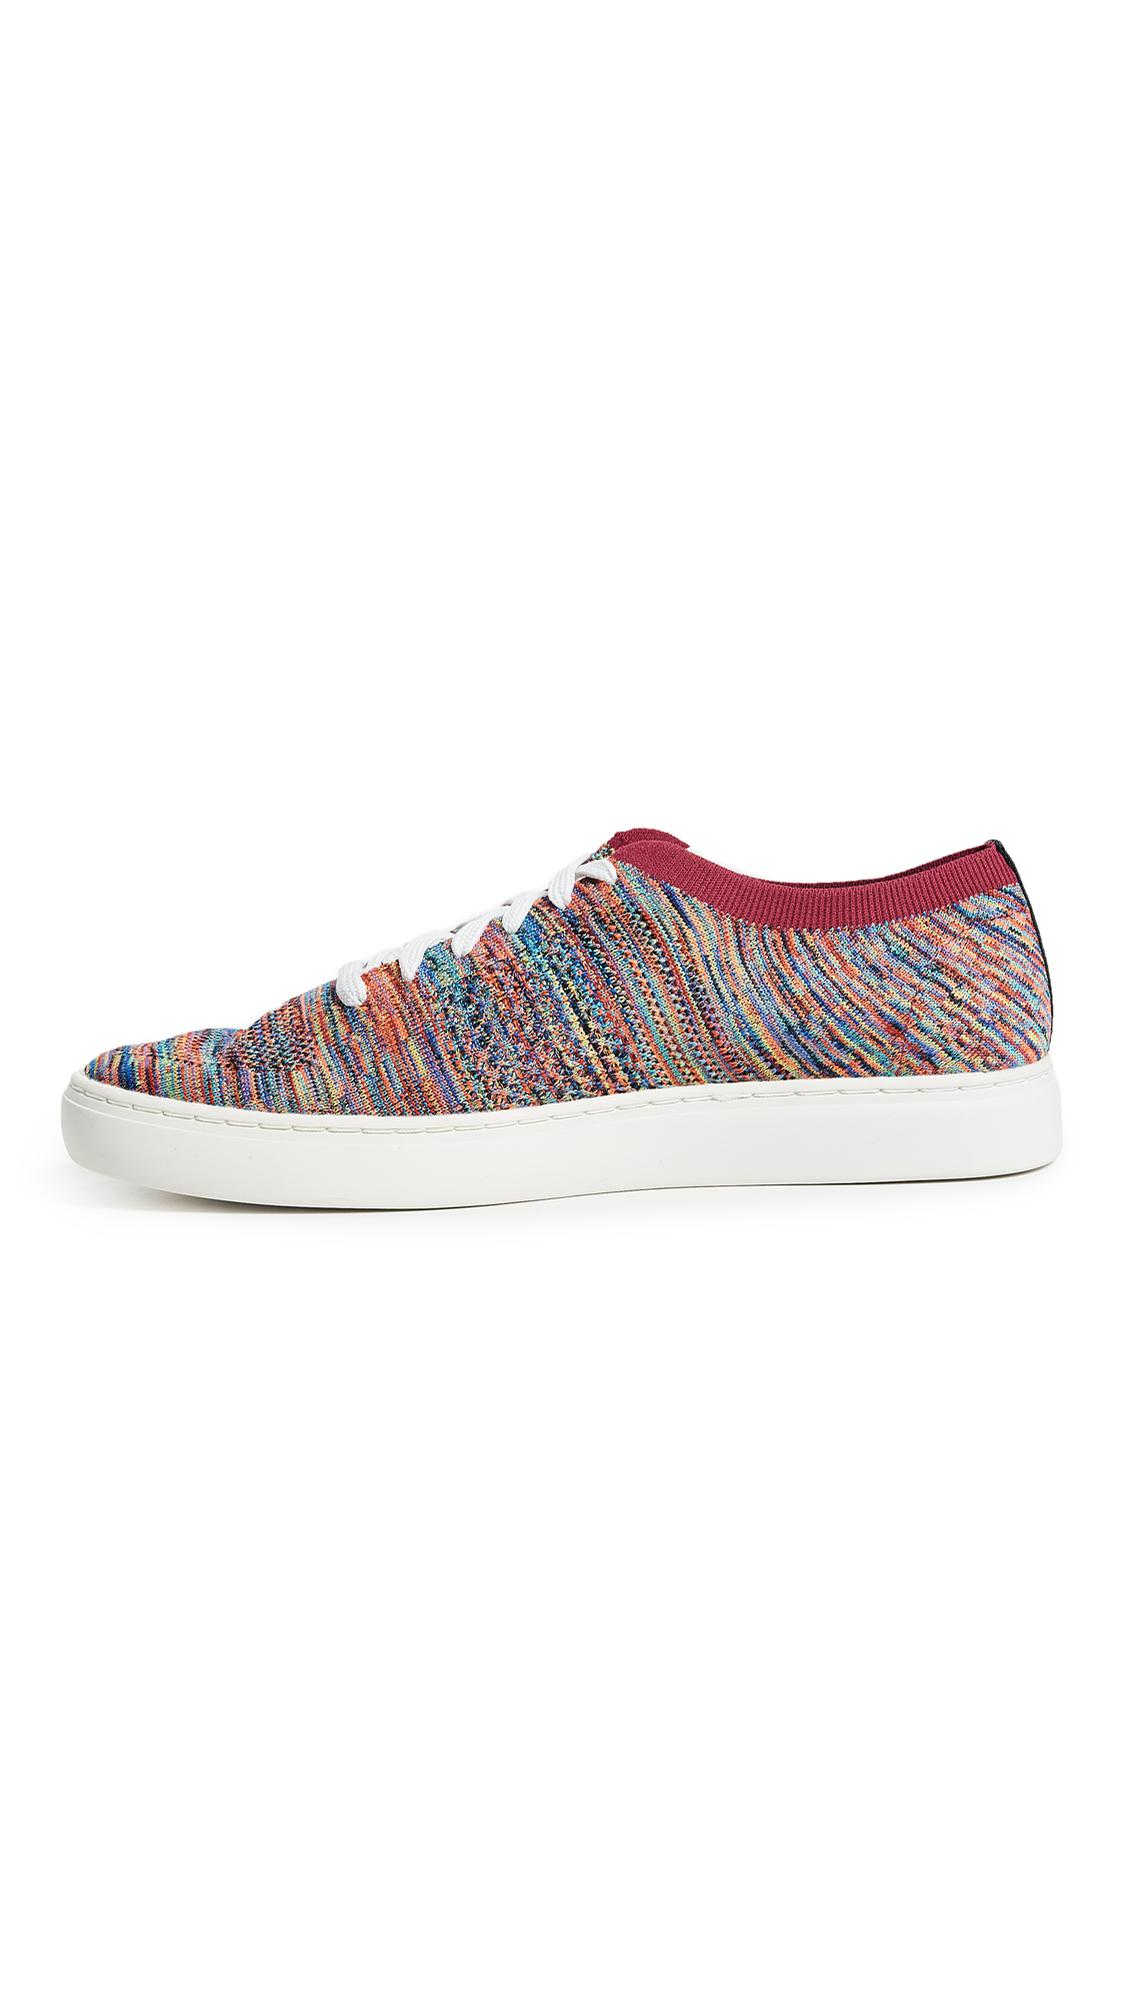 PS by Paul Smith Multicolor Doyle Sneakers 1fZblY